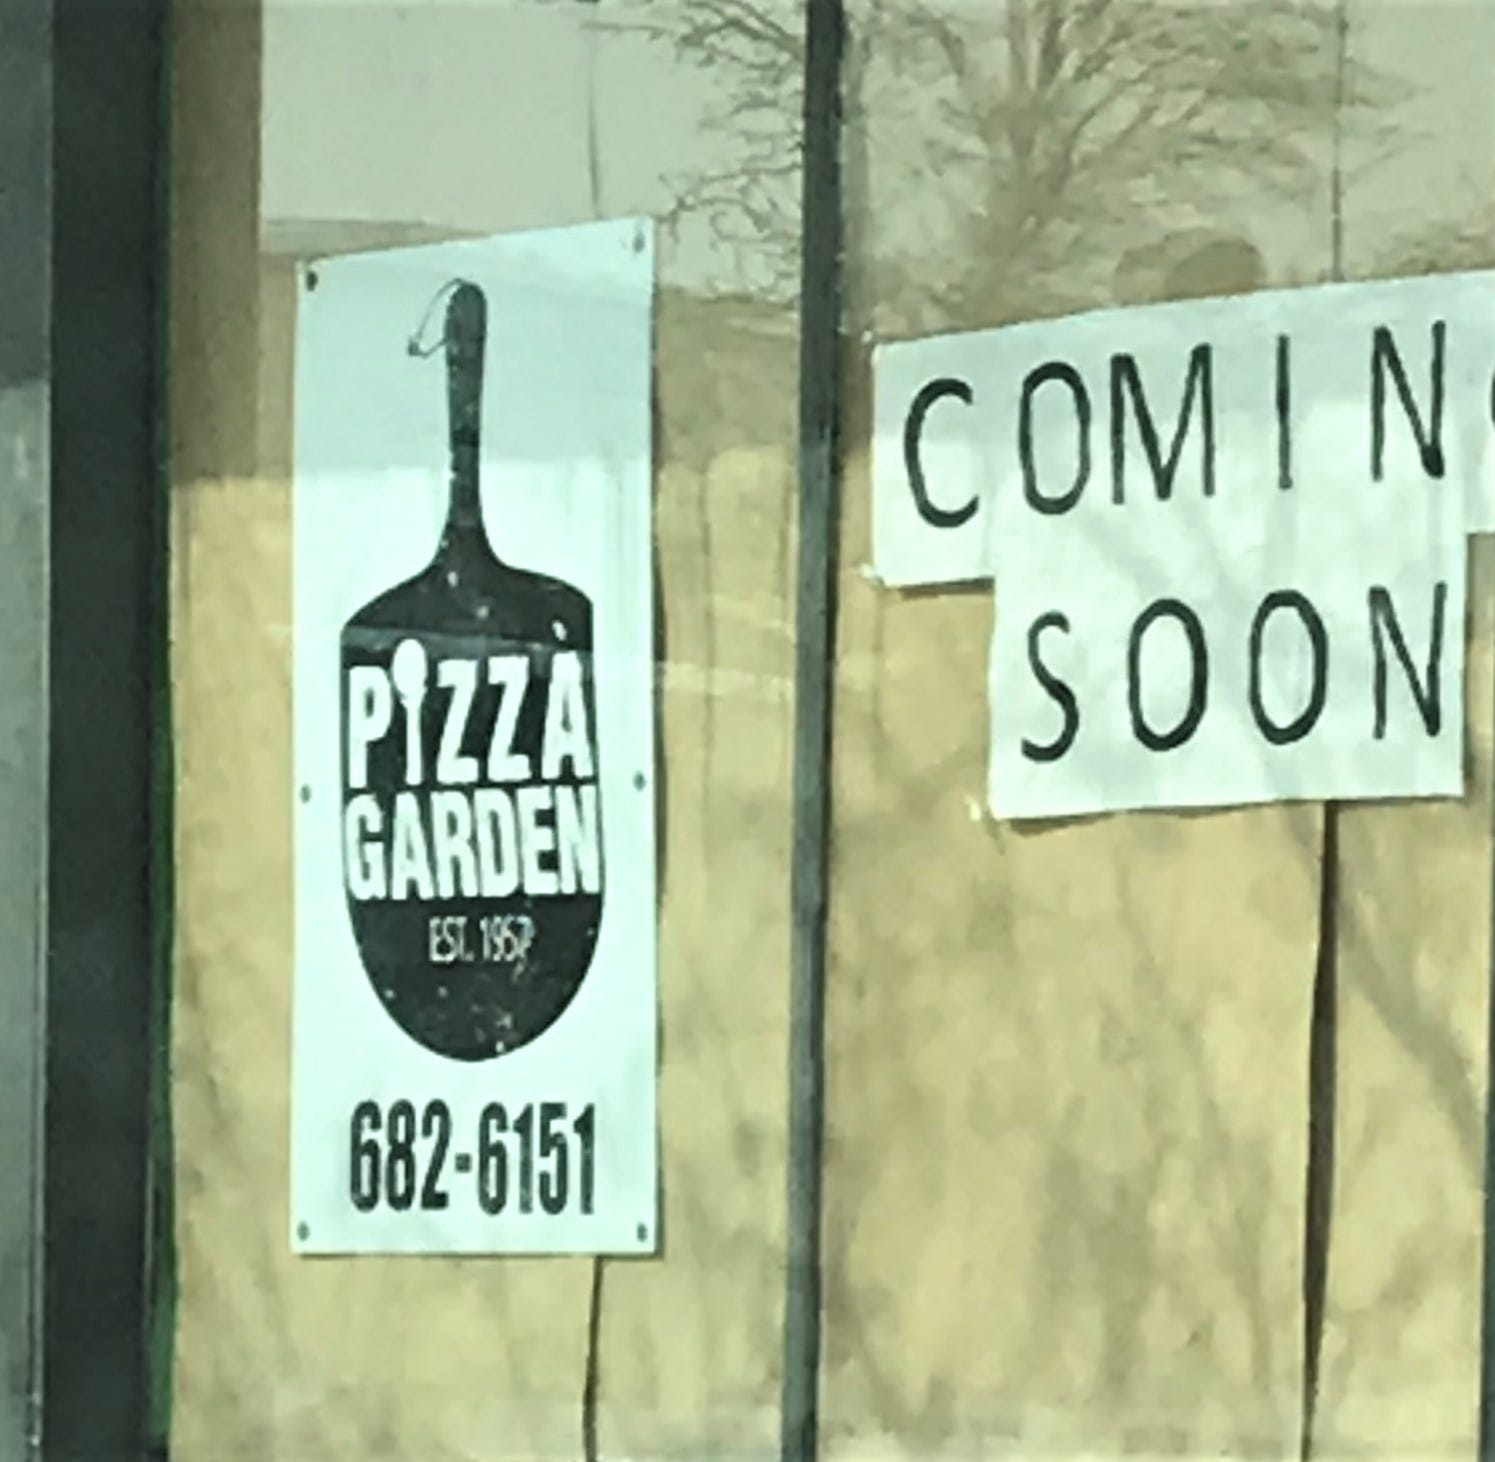 Manitowoc's Pizza Garden to open downtown restaurant on Eighth Street this summer